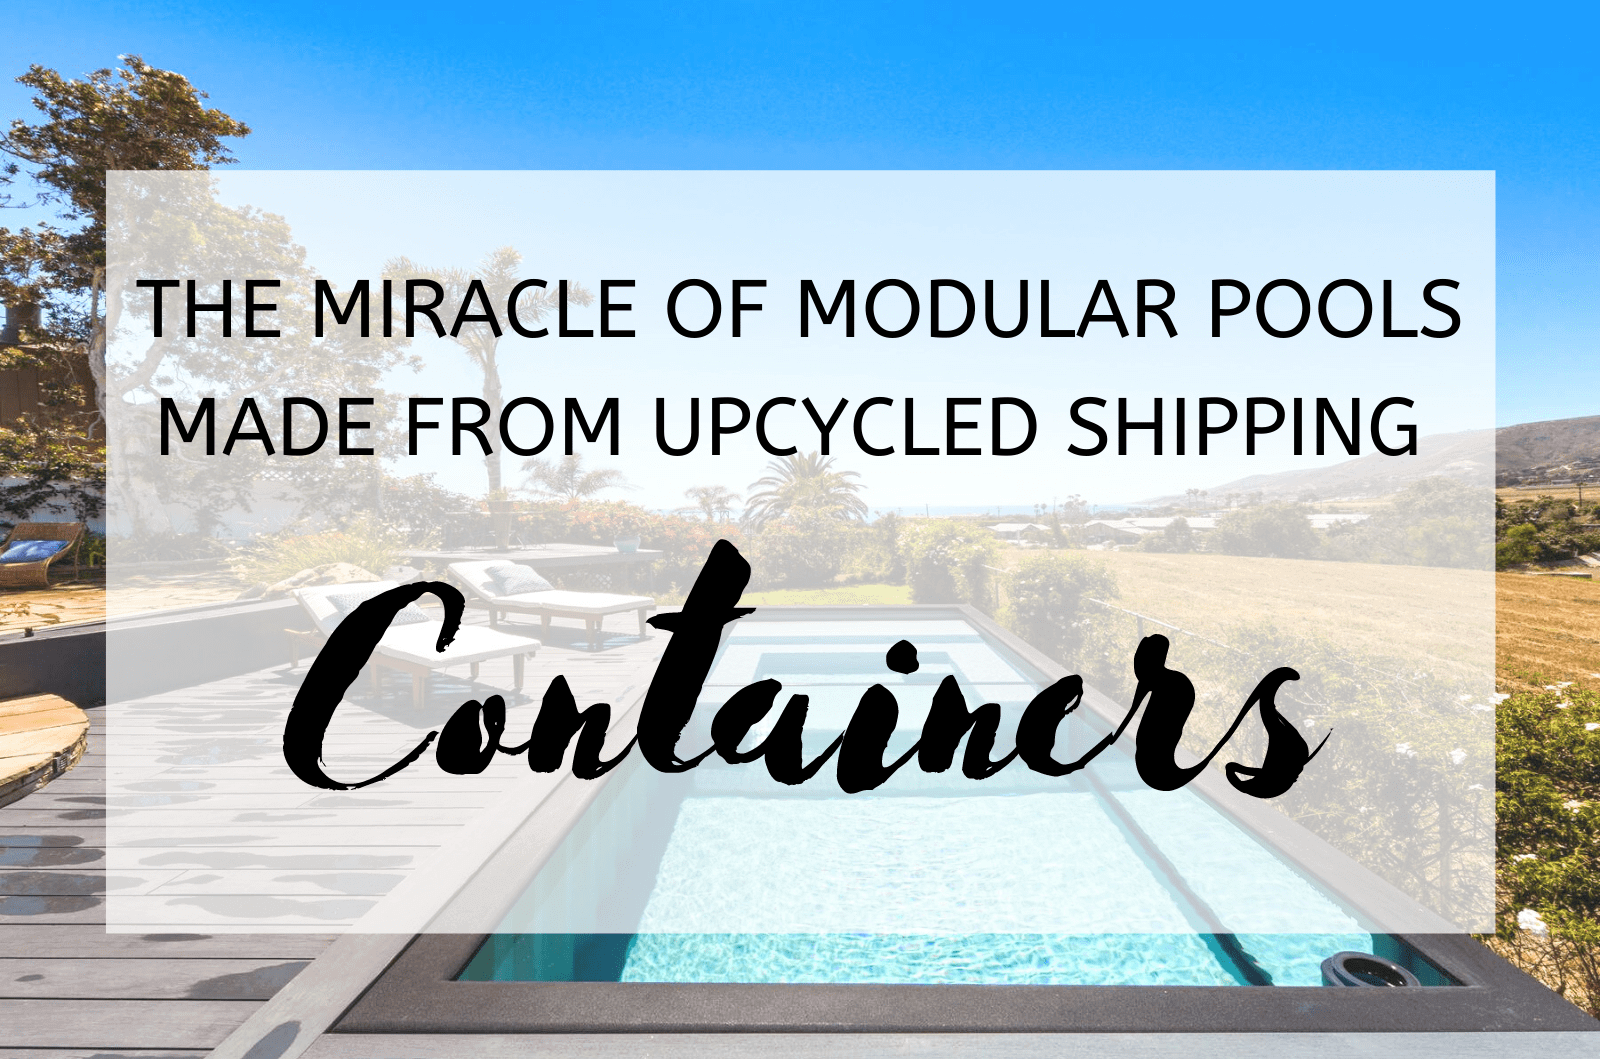 The Miracle of Modular Pools Made from Upcycled Shipping Containers